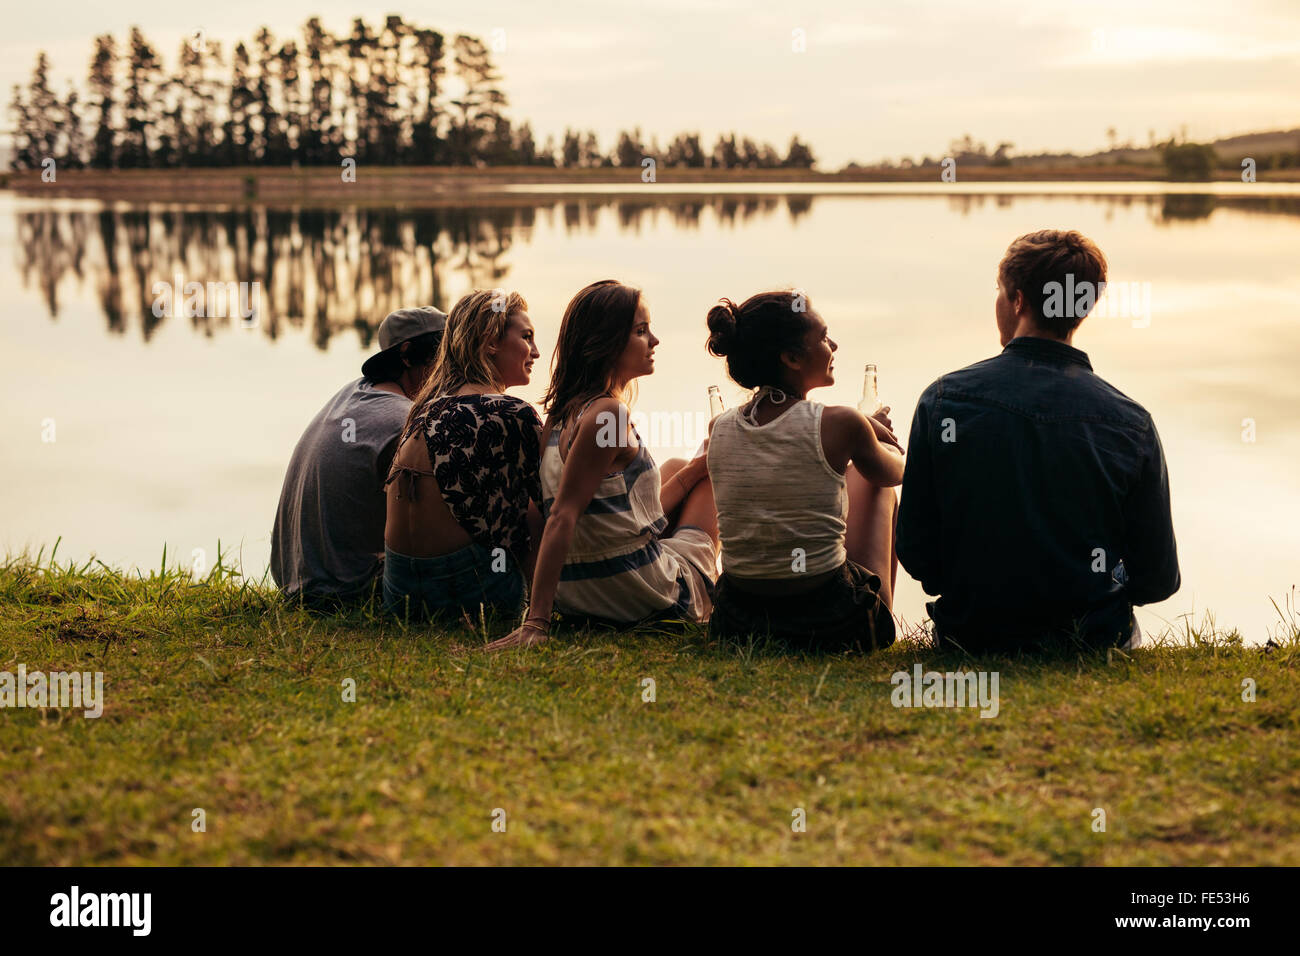 Rear view portrait of group of young friends relaxing by a lake. Young people sitting together by a lake. - Stock Image